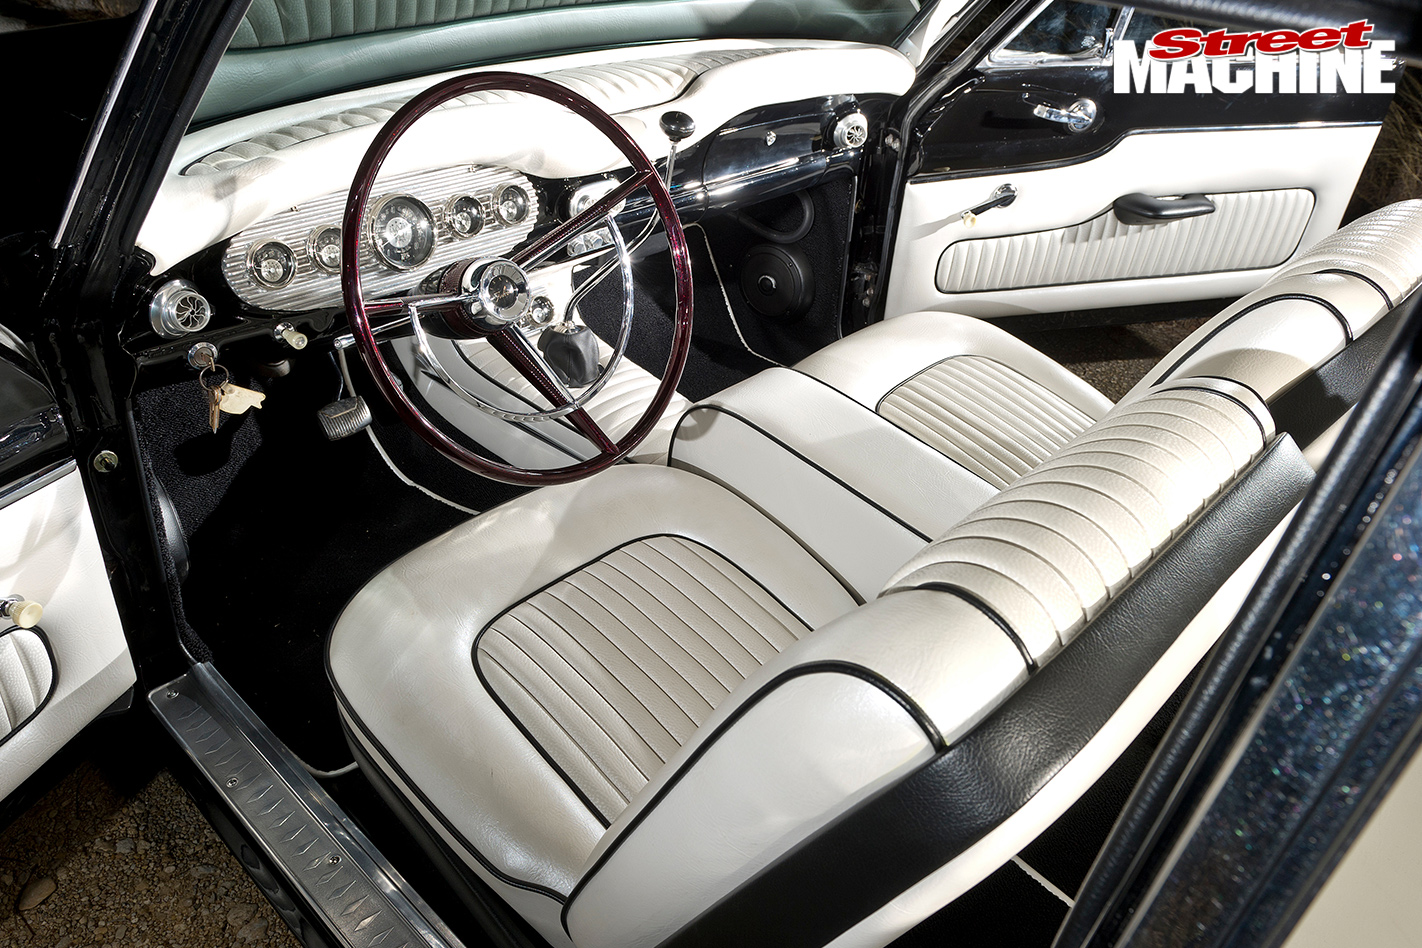 1961-Ford -Falcon -Wagon -interior